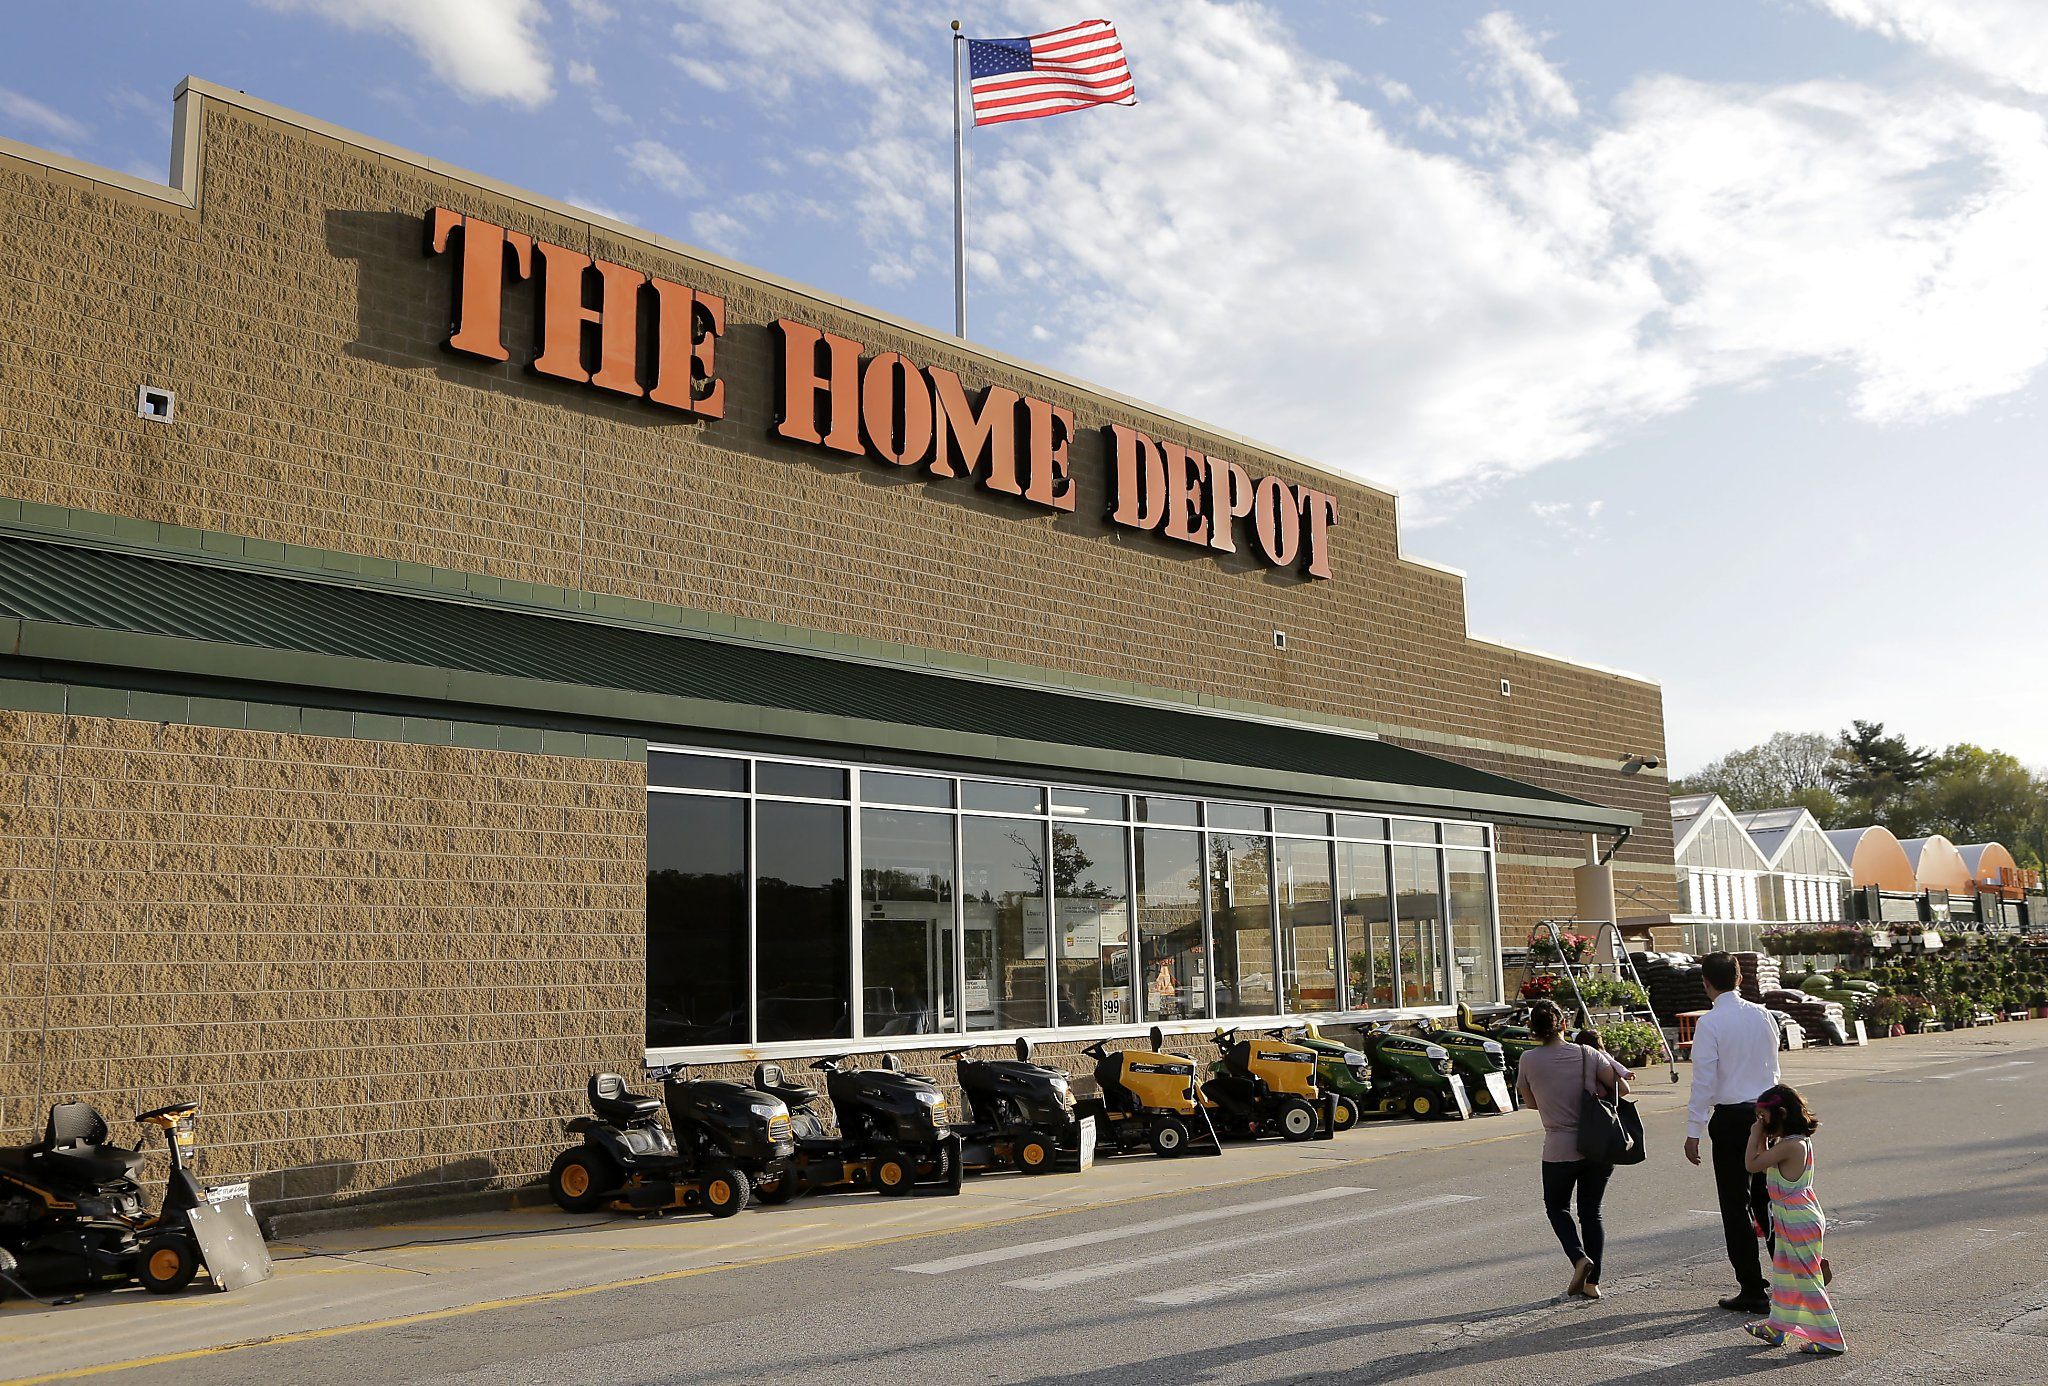 Home Depot shows how corporate America may have other plans for